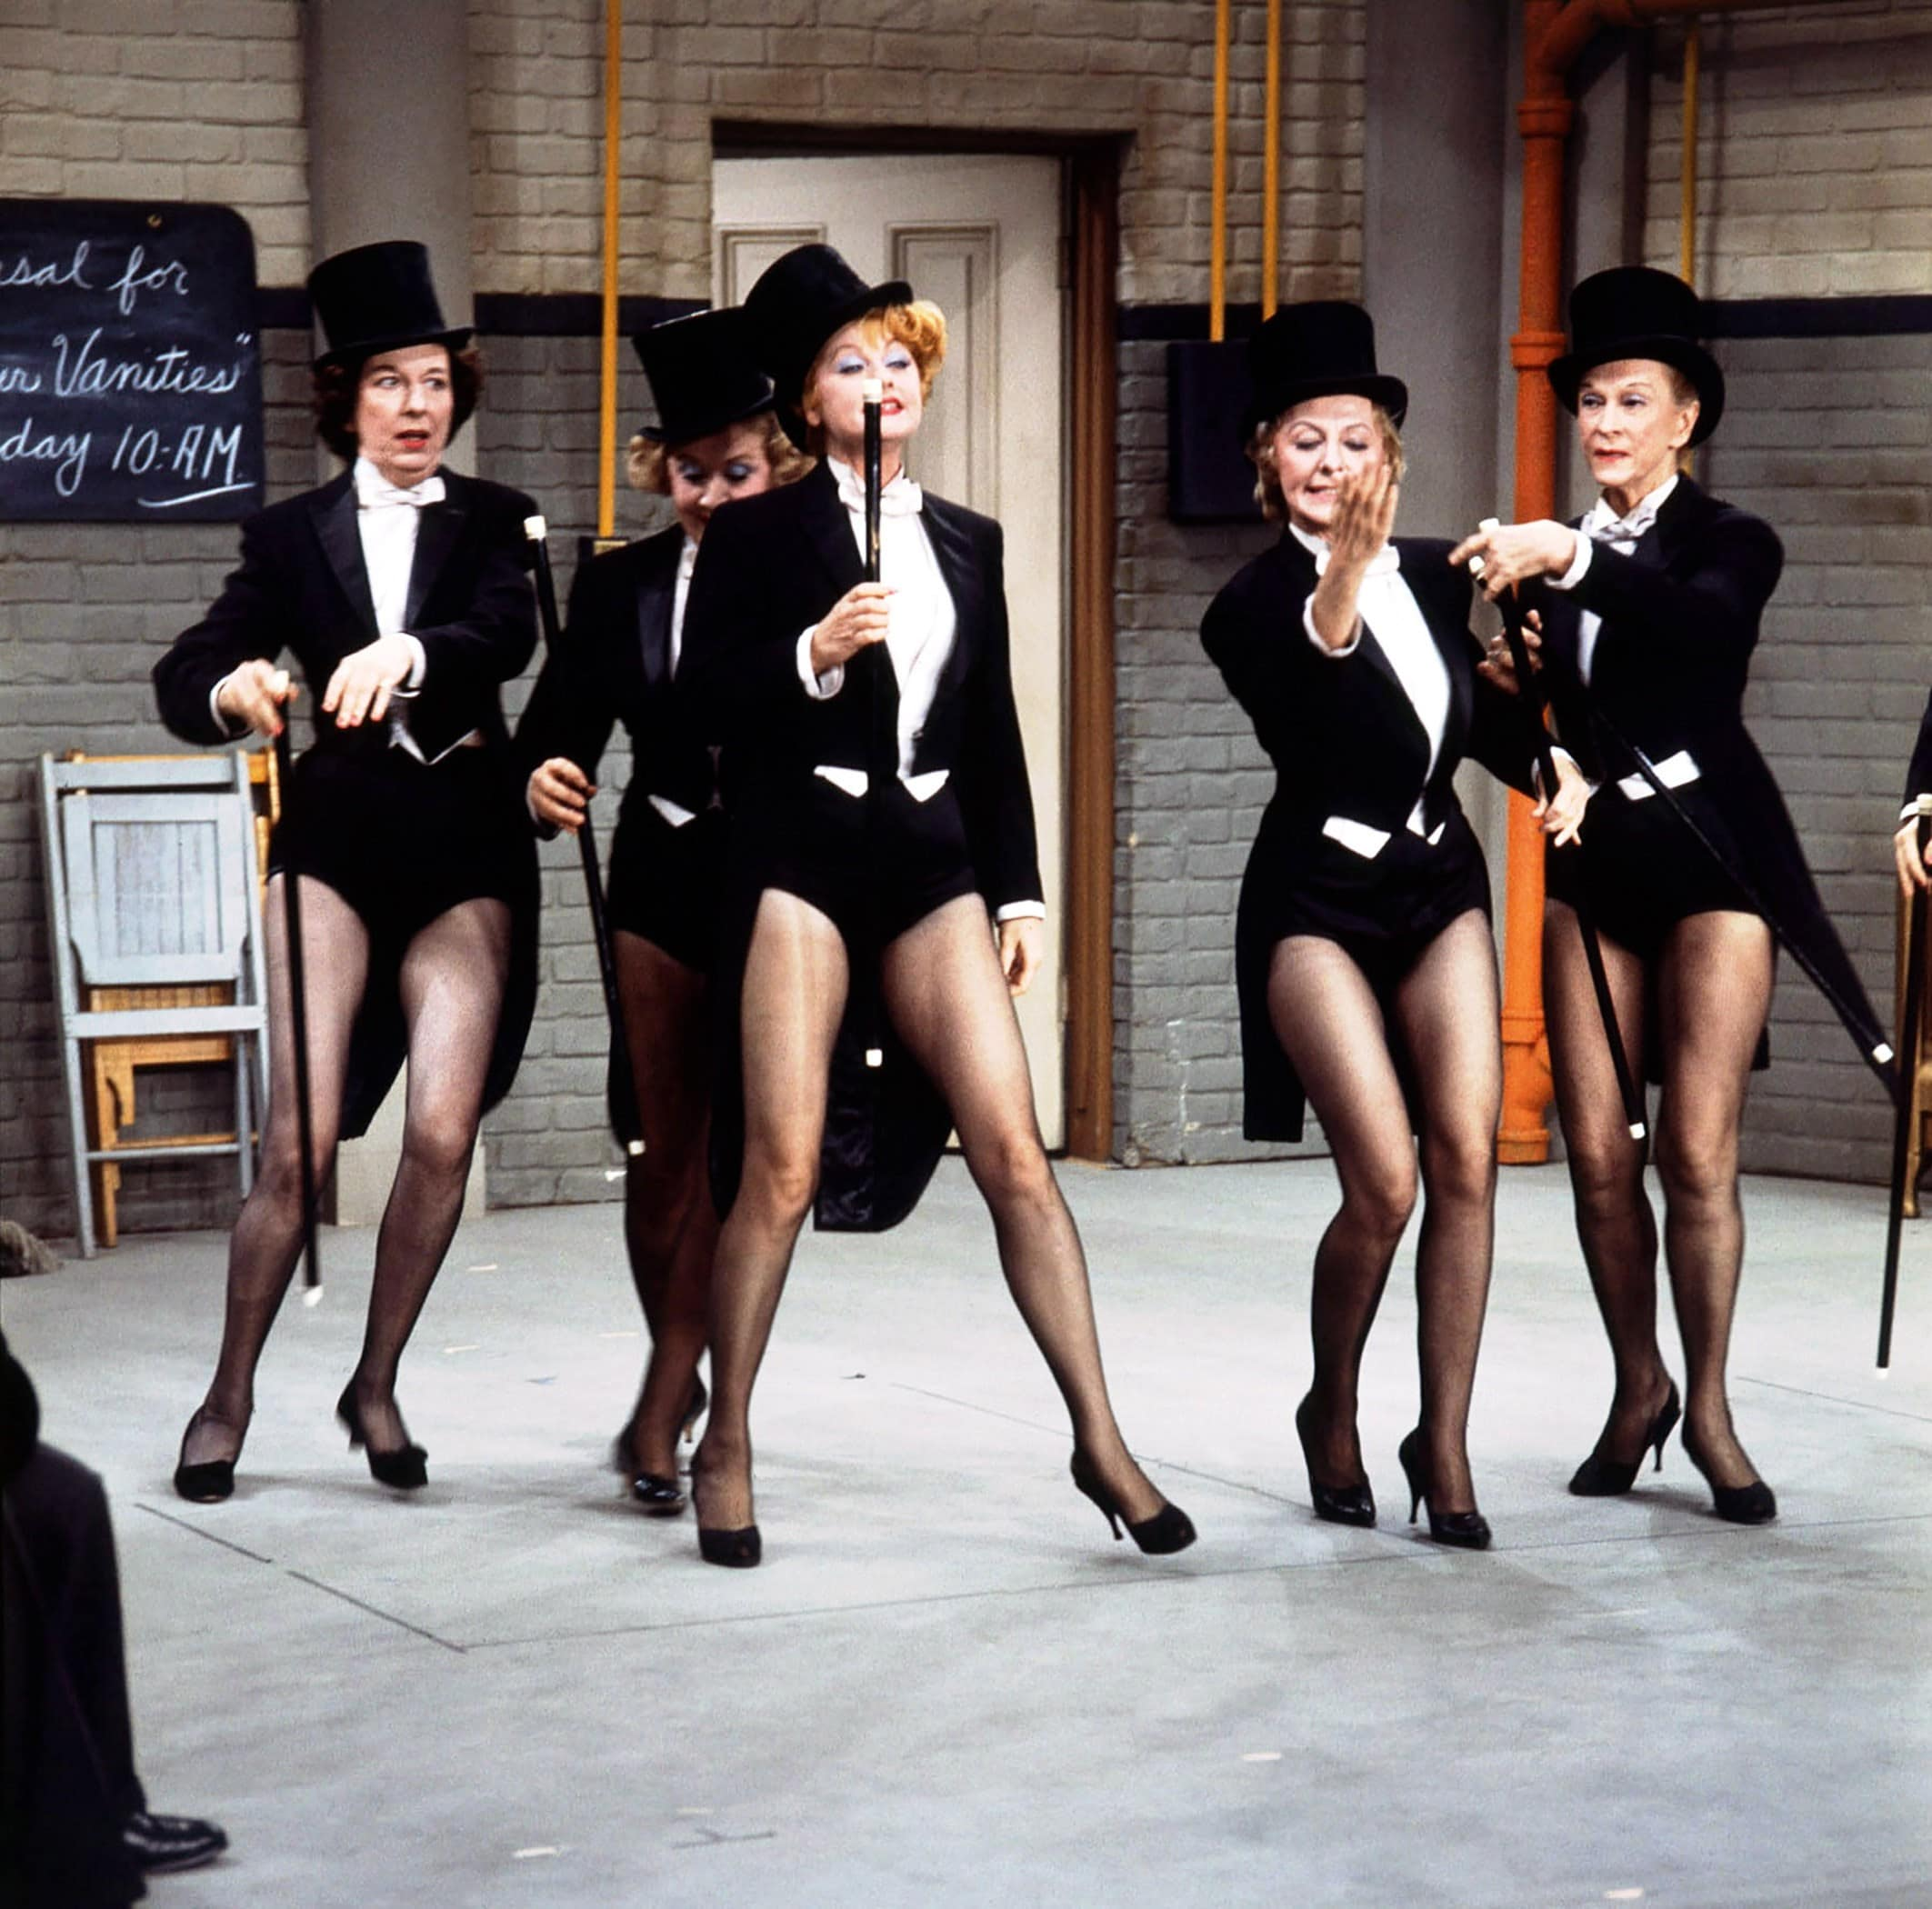 THE LUCY SHOW, from left: Mary Wickes, Vivian Vance, Lucille Ball, Mary Jane Croft, Hazel Pierce, 'Lucy Plays Cleopatra'